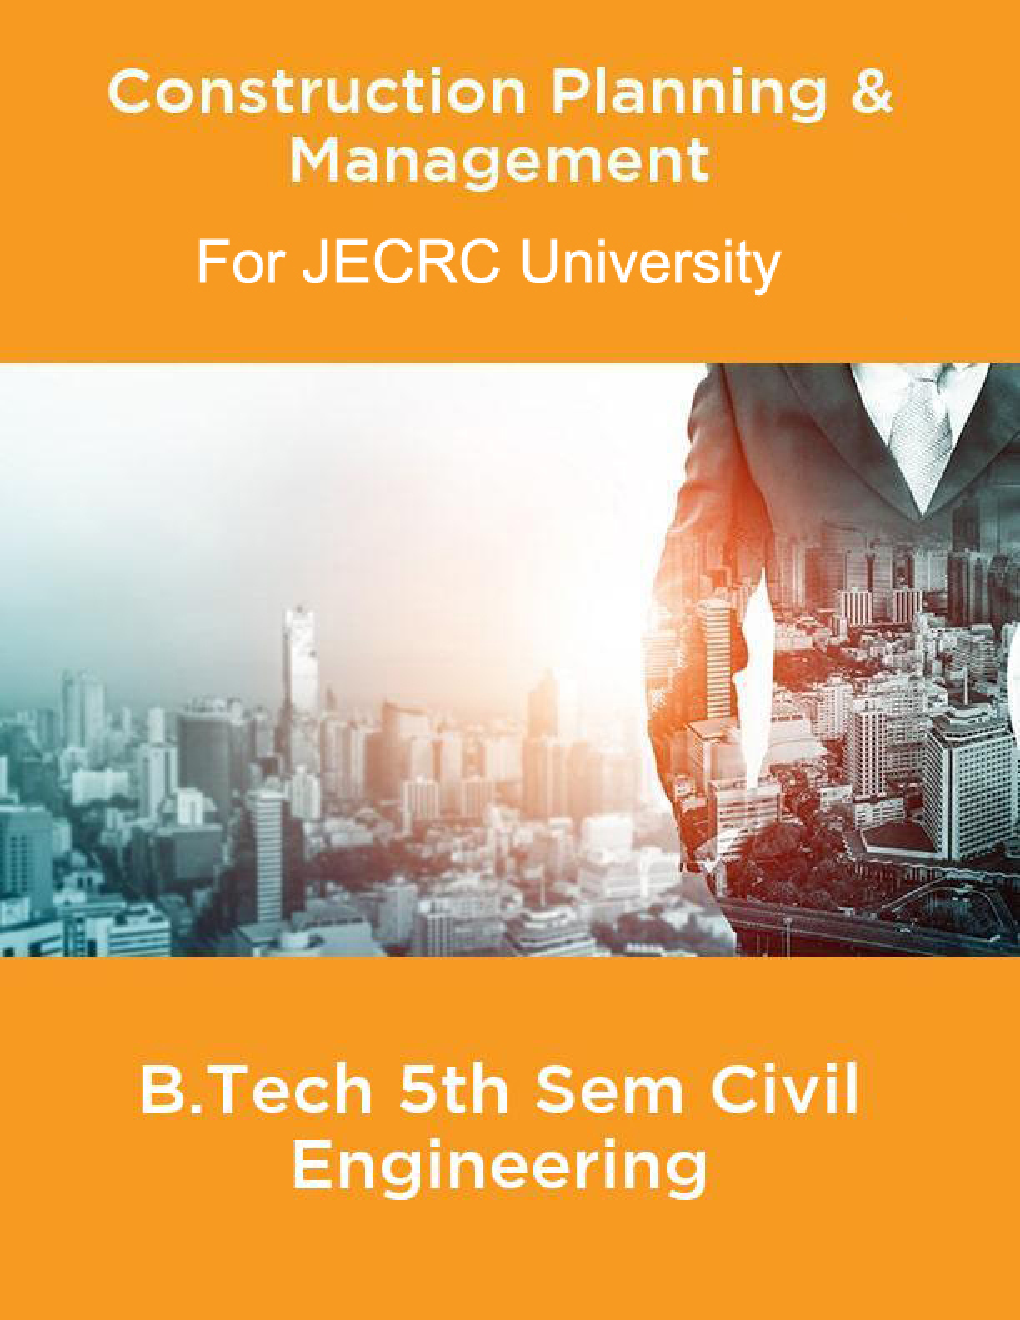 Construction Planning & Management B.Tech 5th Sem Civil Engineering For JECRC University - Page 1